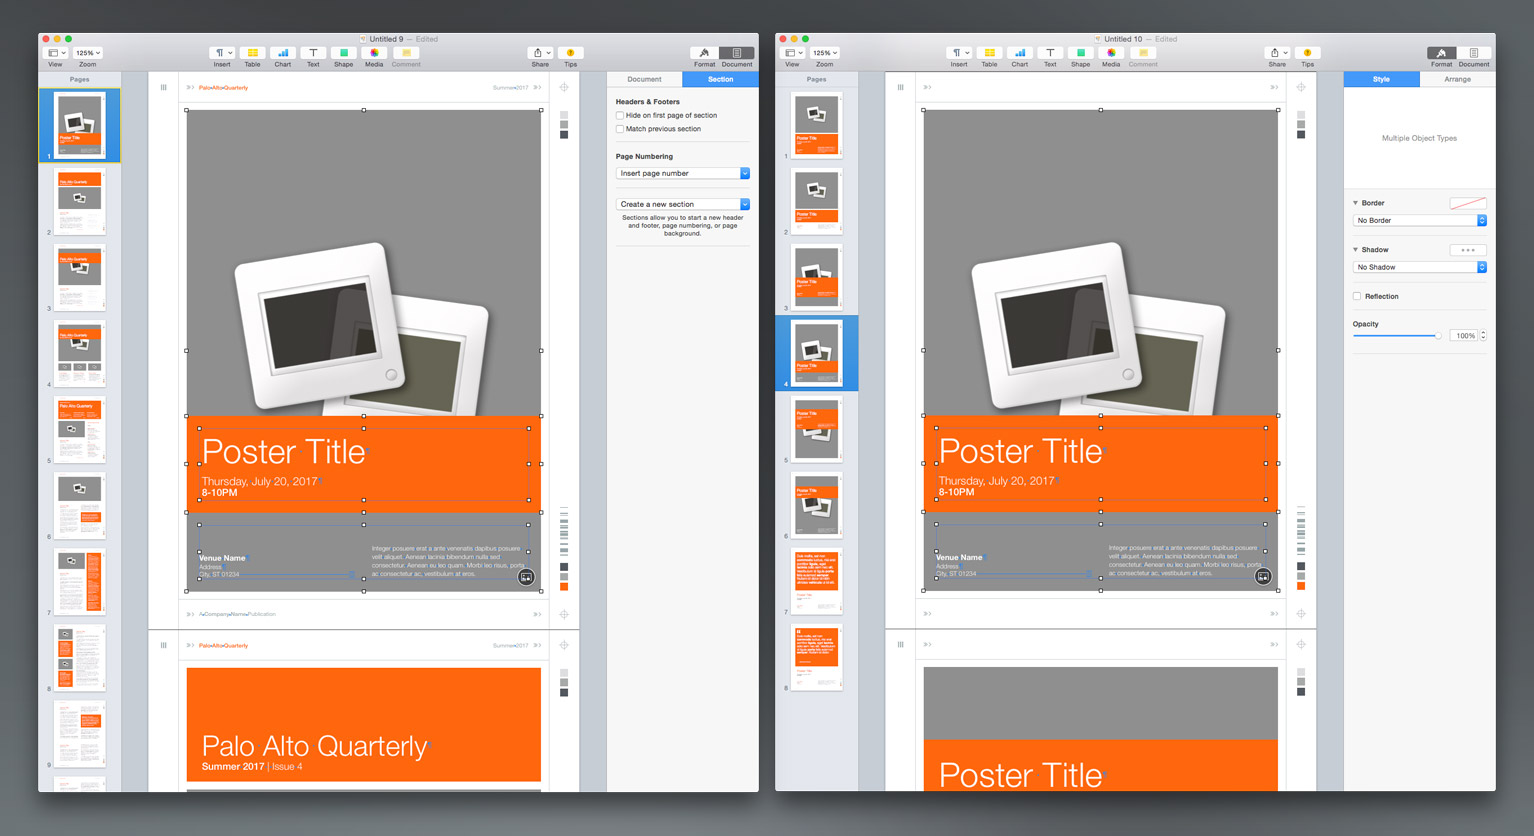 Paste the Poster layout objects to the blank Page 1 in the Newsletter document.